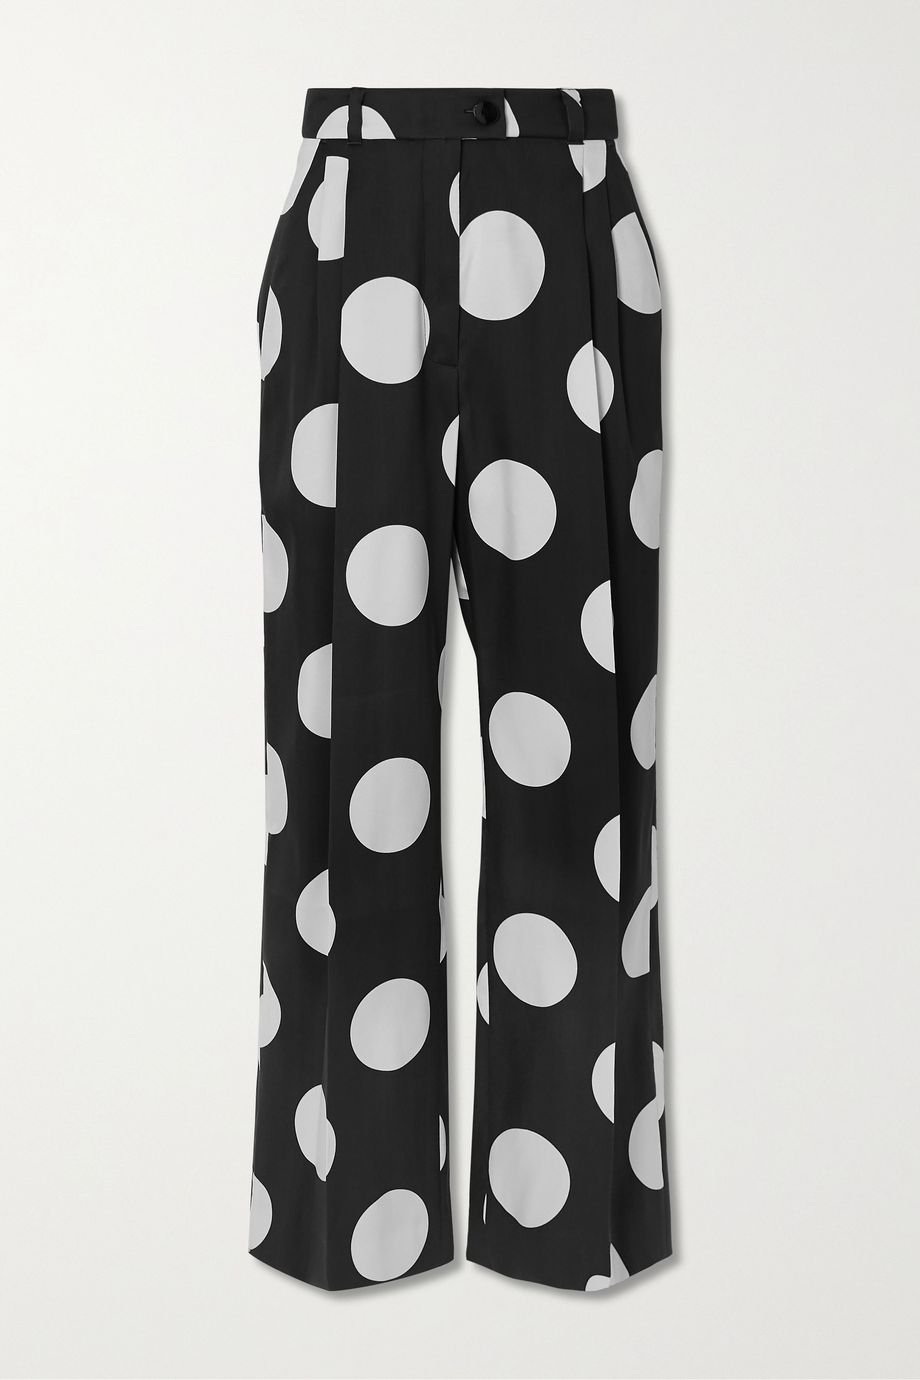 Stine Goya + NET SUSTAIN Chet polka-dot mikado straight-leg pants